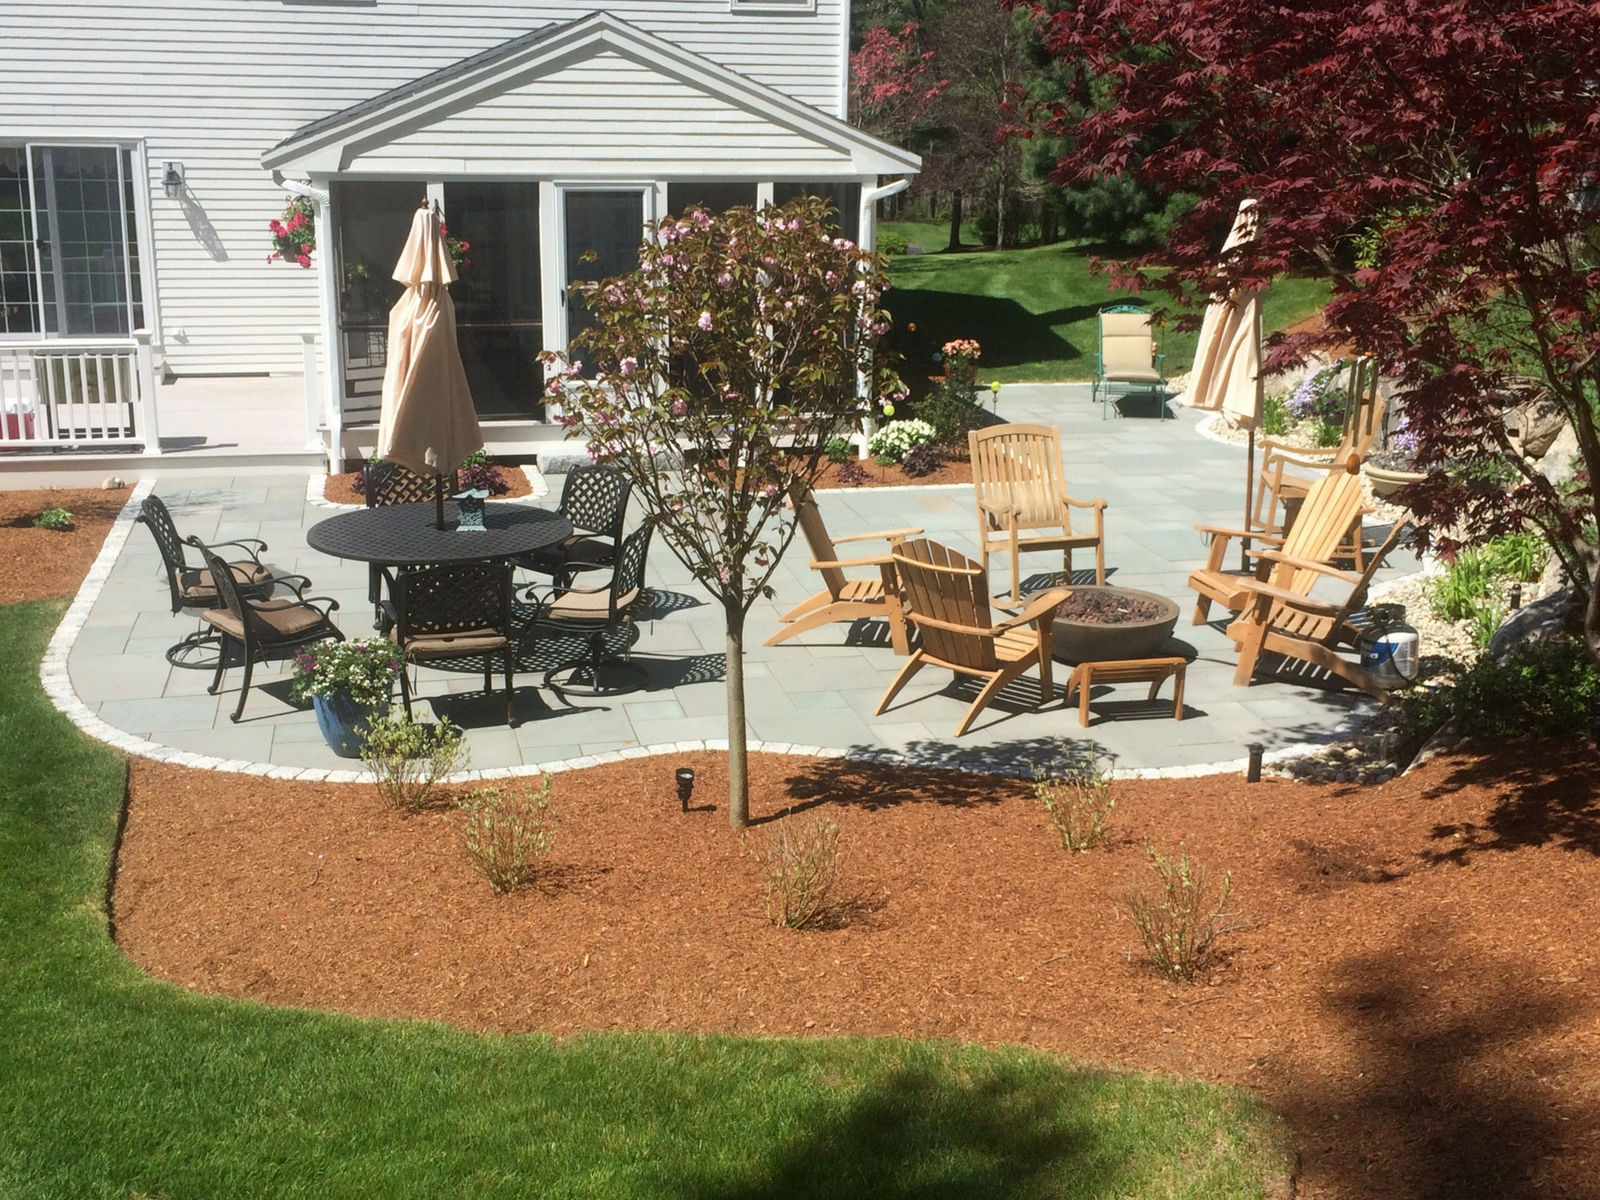 Amazing Mansfield Outdoor Living Mansfield Outdoor Living Sean Flynn Landscape Hardscapes Backyard Outdoor Living Areas America S Backyard Outdoor Living outdoor Backyard Outdoor Living